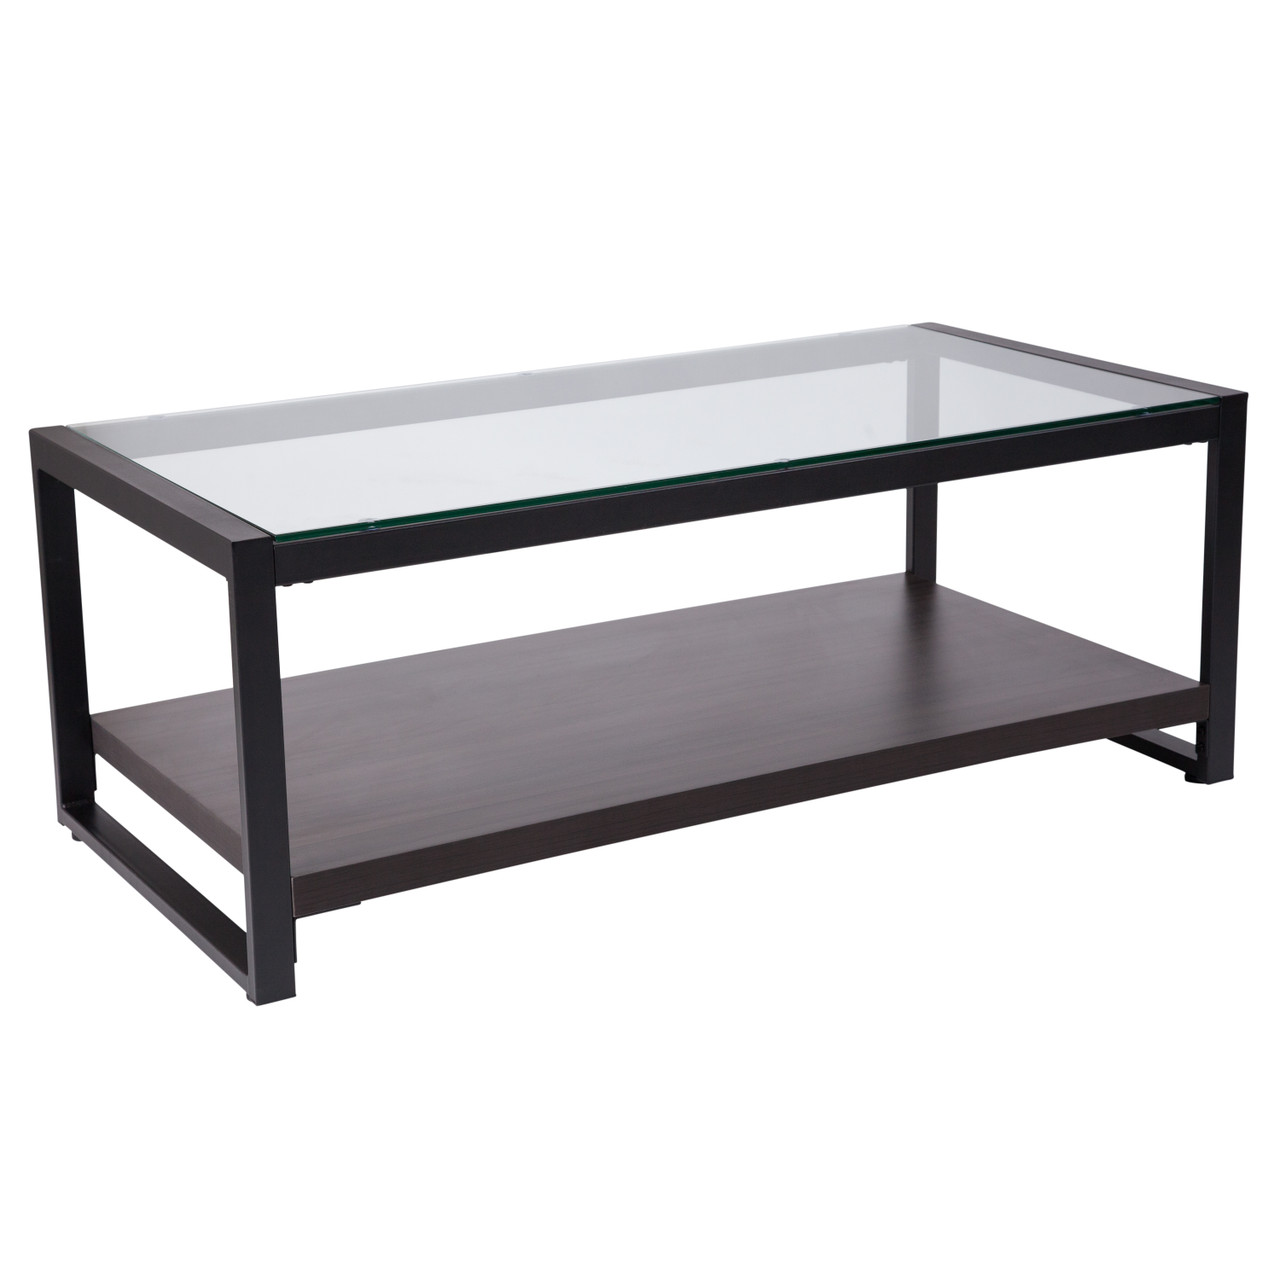 - The Glass Coffee Table With Wood Grain Raised Shelf And Black